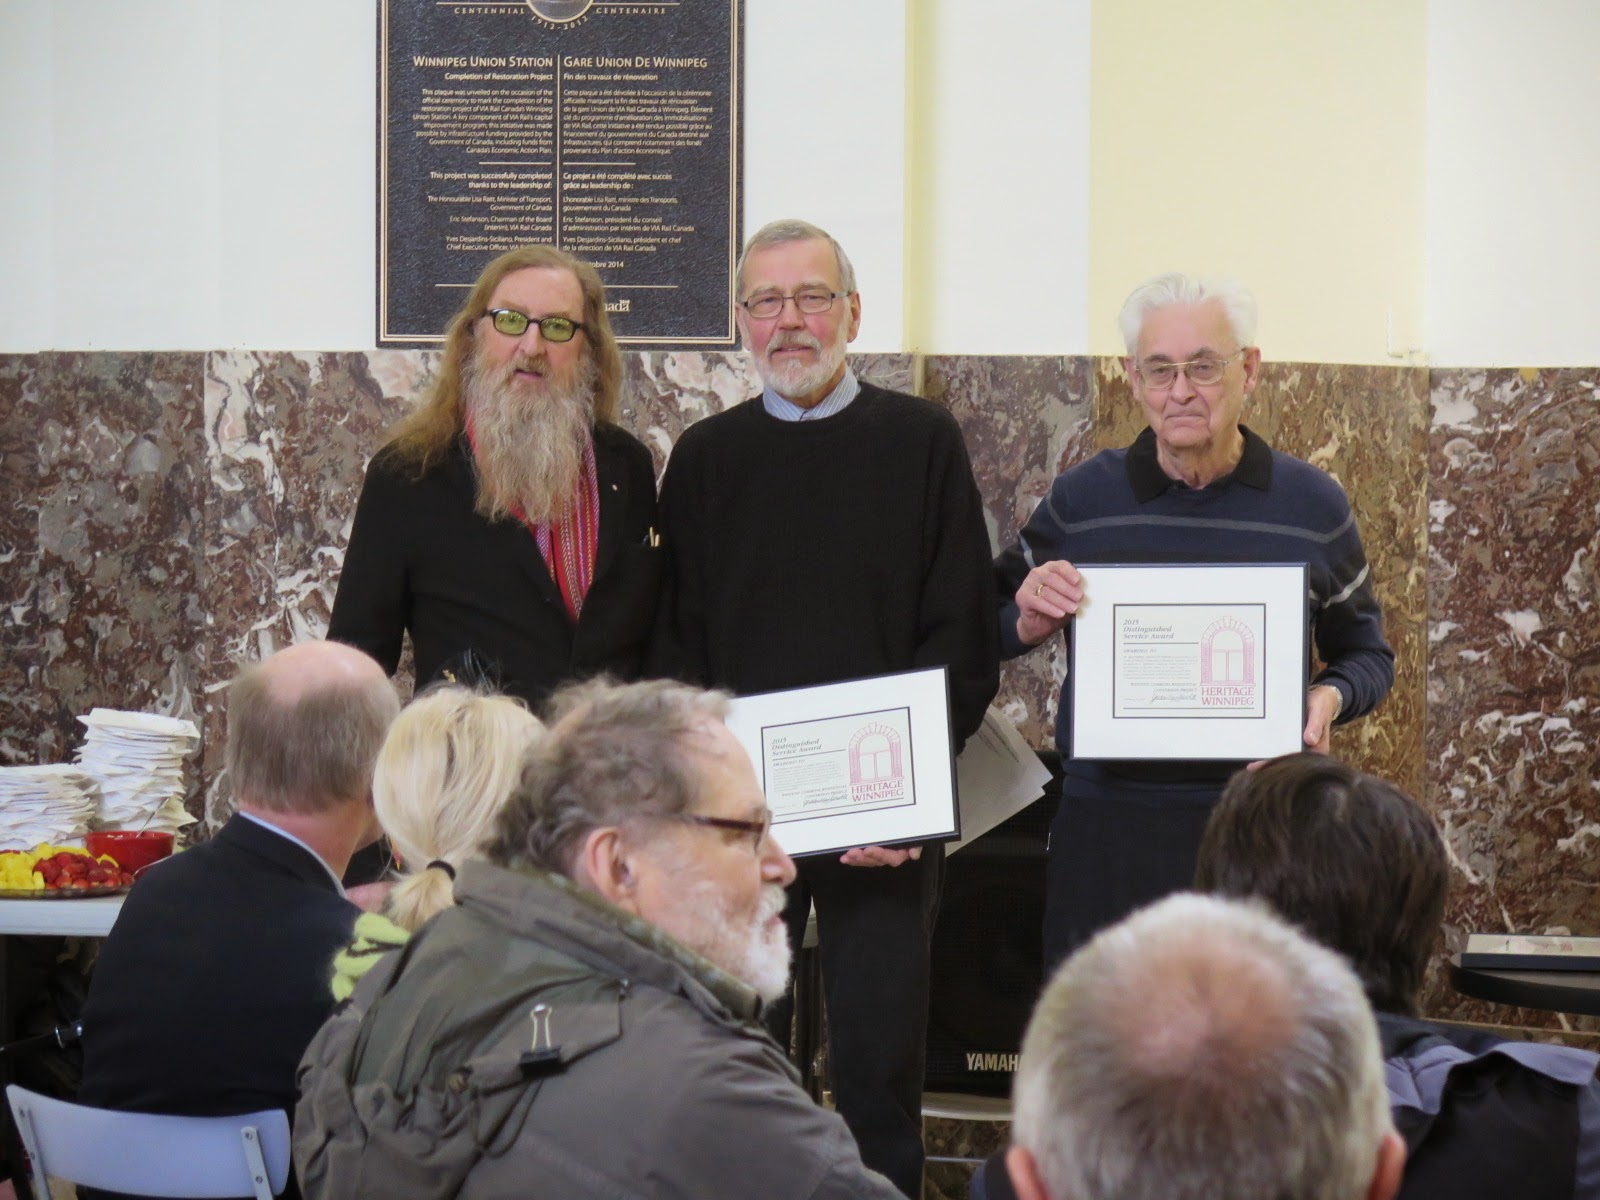 Bob Clarkson and Roger Gateson accept awards on behalf of the church communities